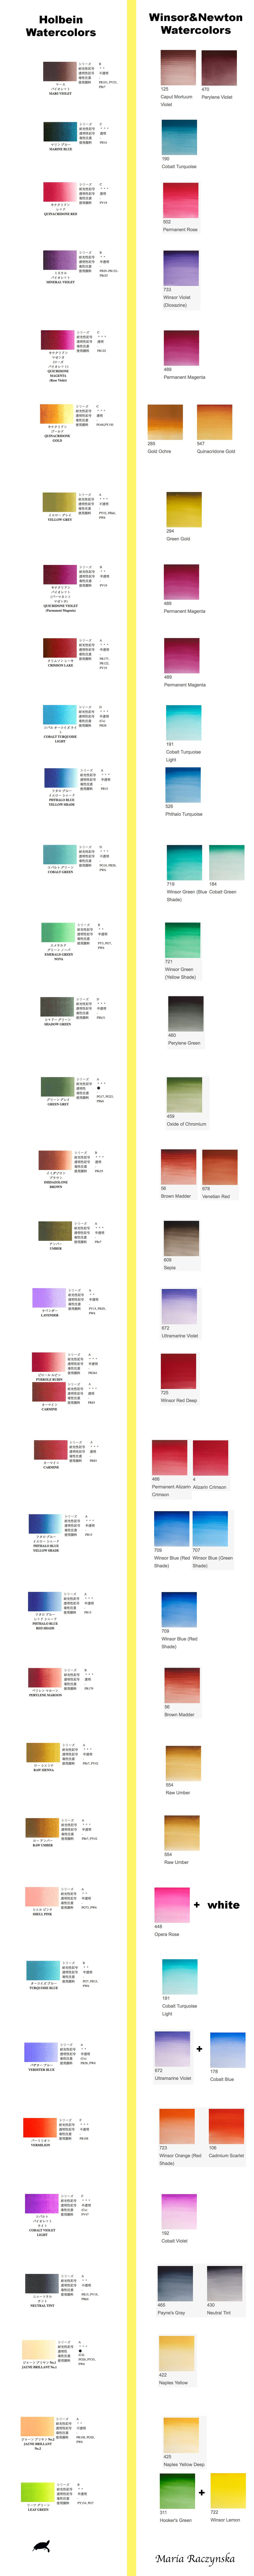 Holbein Watercolor Pigments Vs Winsor And Newton Chart In 2020